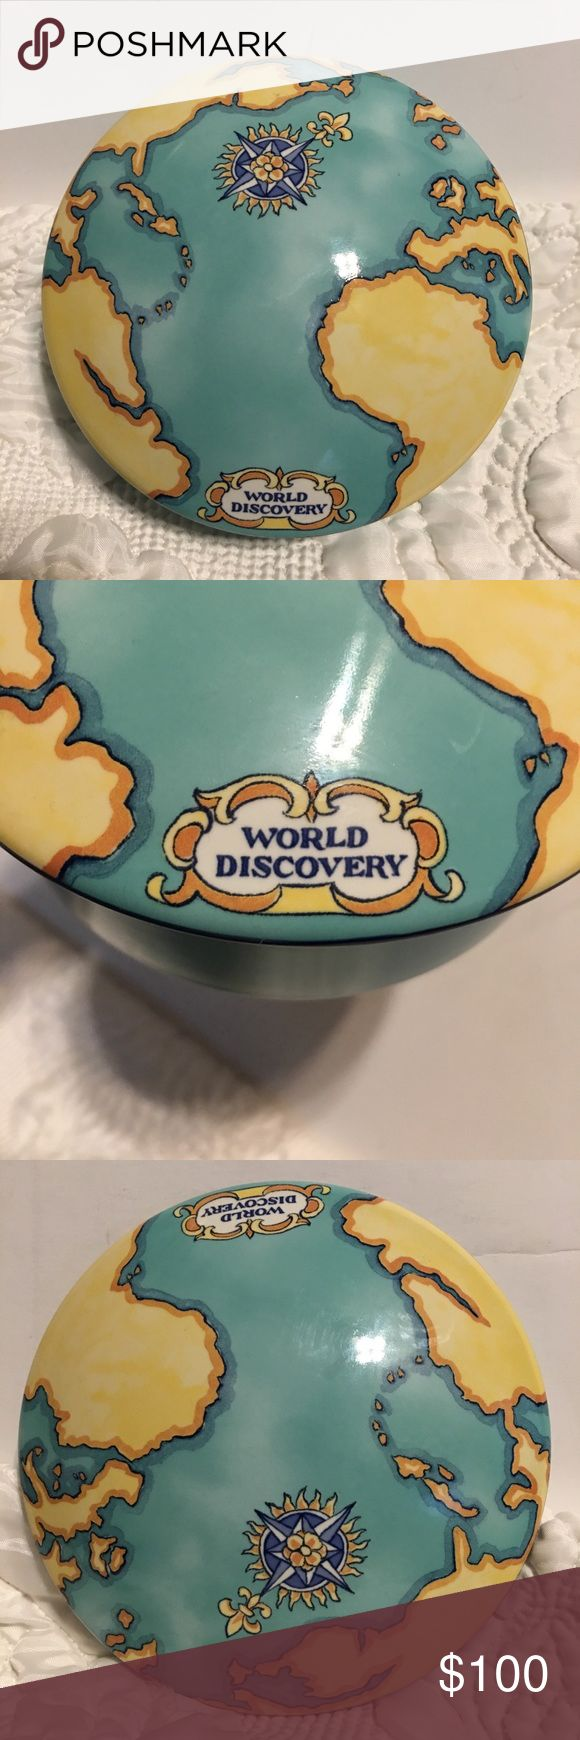 Tiffany & Co World Discovery Collectible Box 🎁 Very nice Tiffany & company collectible Ceramic jewelry box . Flawless with no chips . Box has been Stored . Authentic! Very nice Holiday gift idea . Fast shipping! Box or dust bag not included in sale. Tiffany & Co. Jewelry